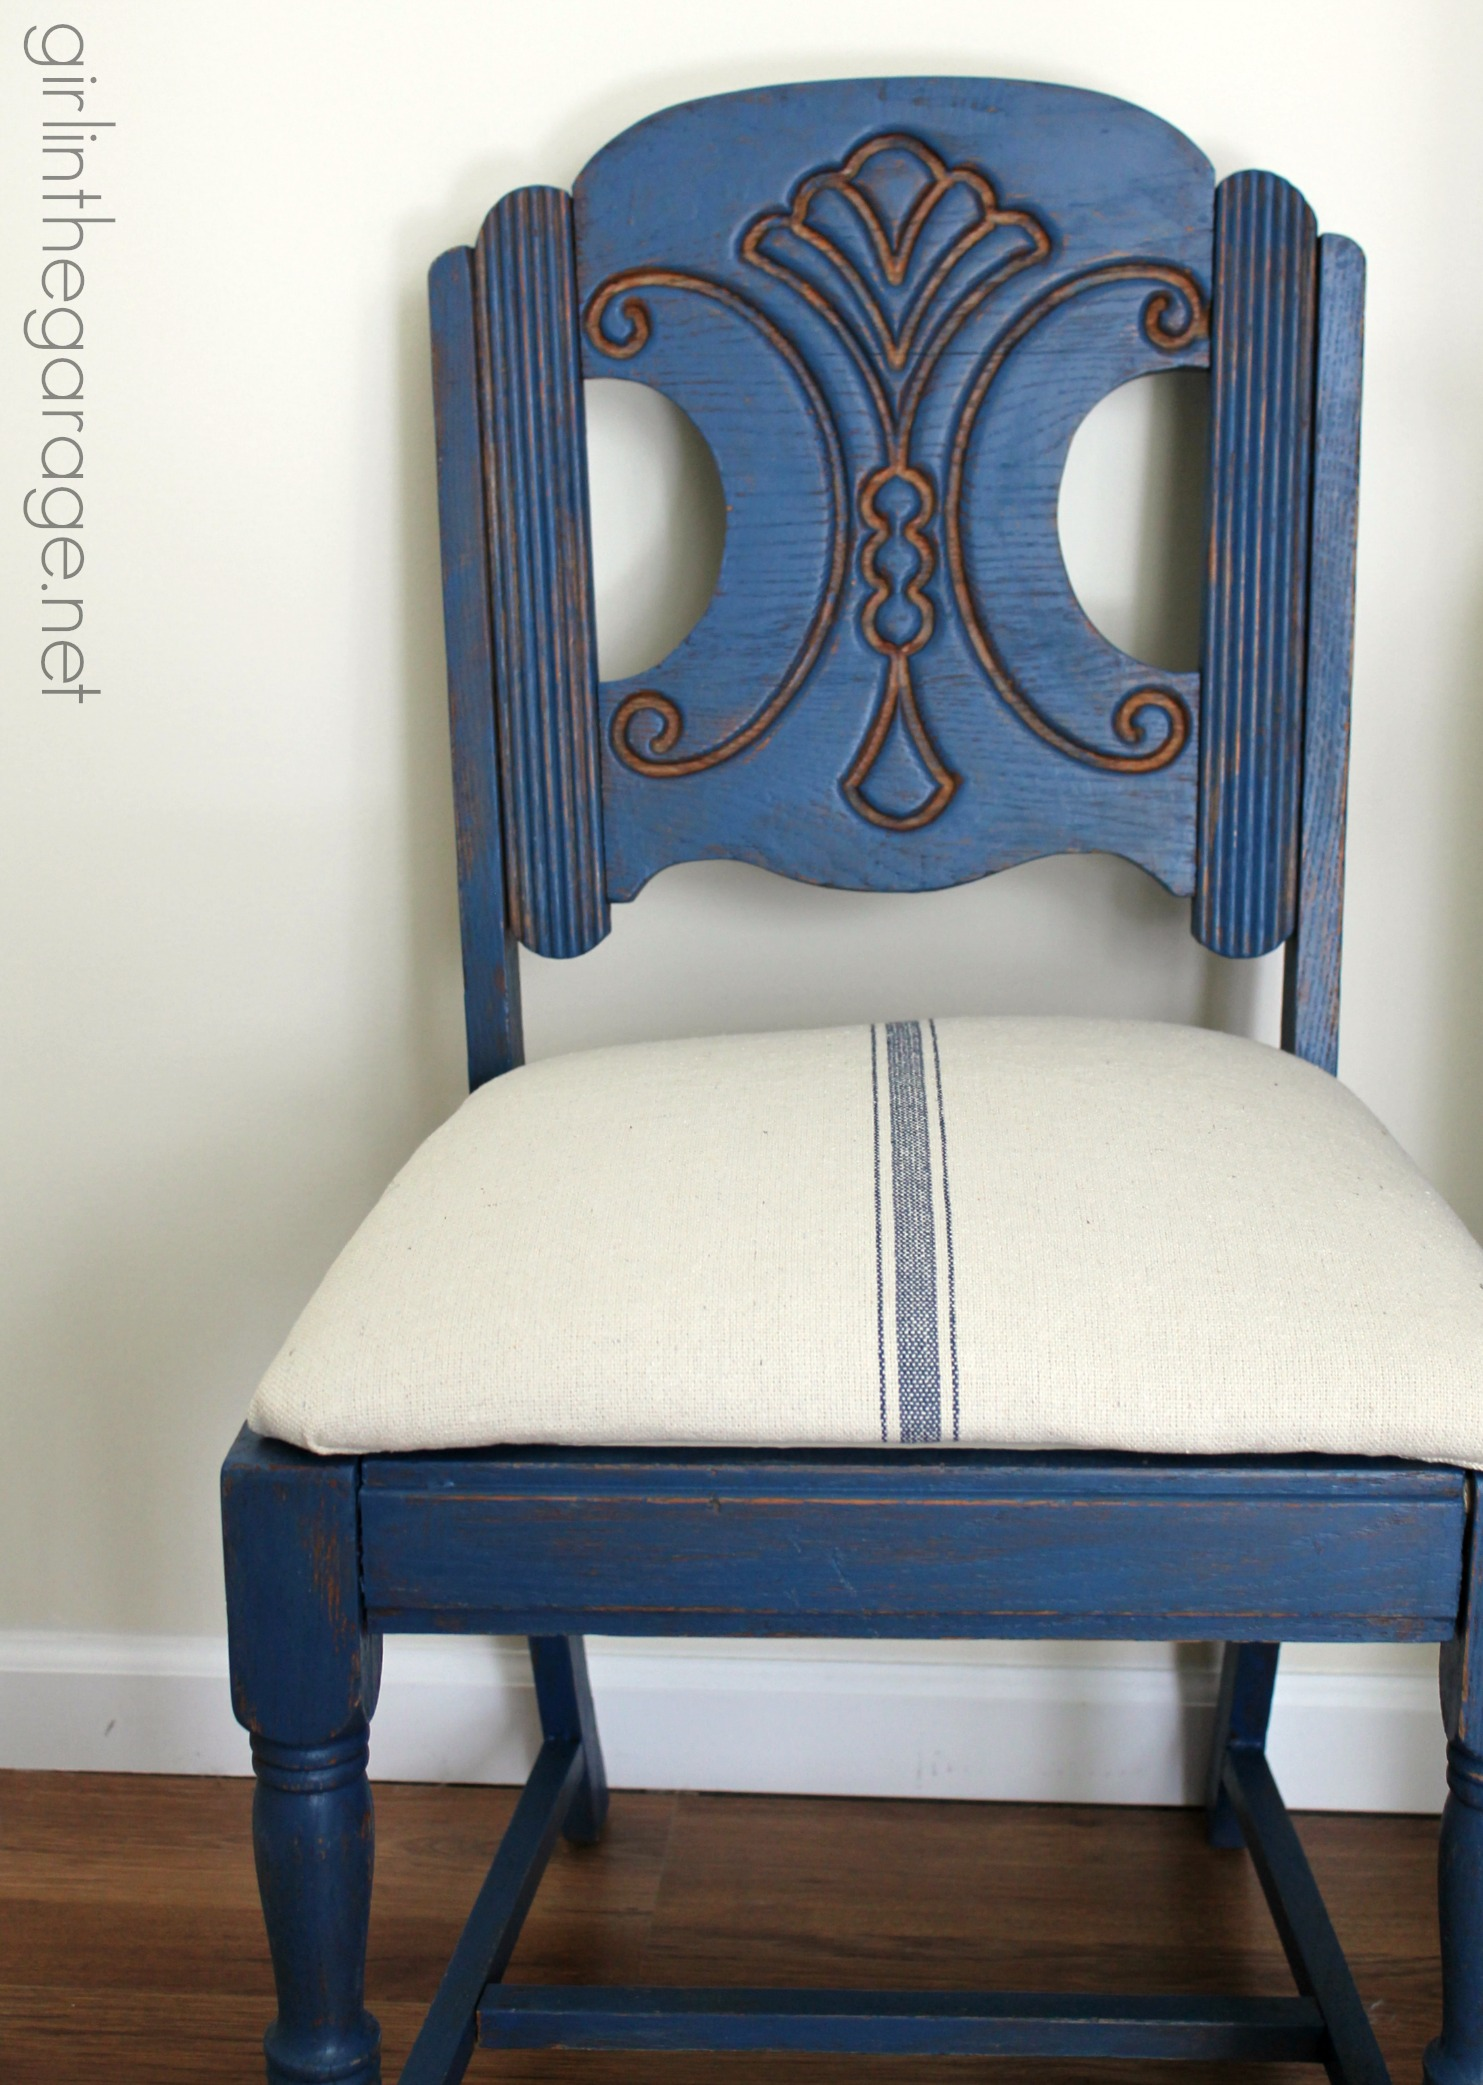 old blue chair lidl fishing grain sack makeover  themed furniture